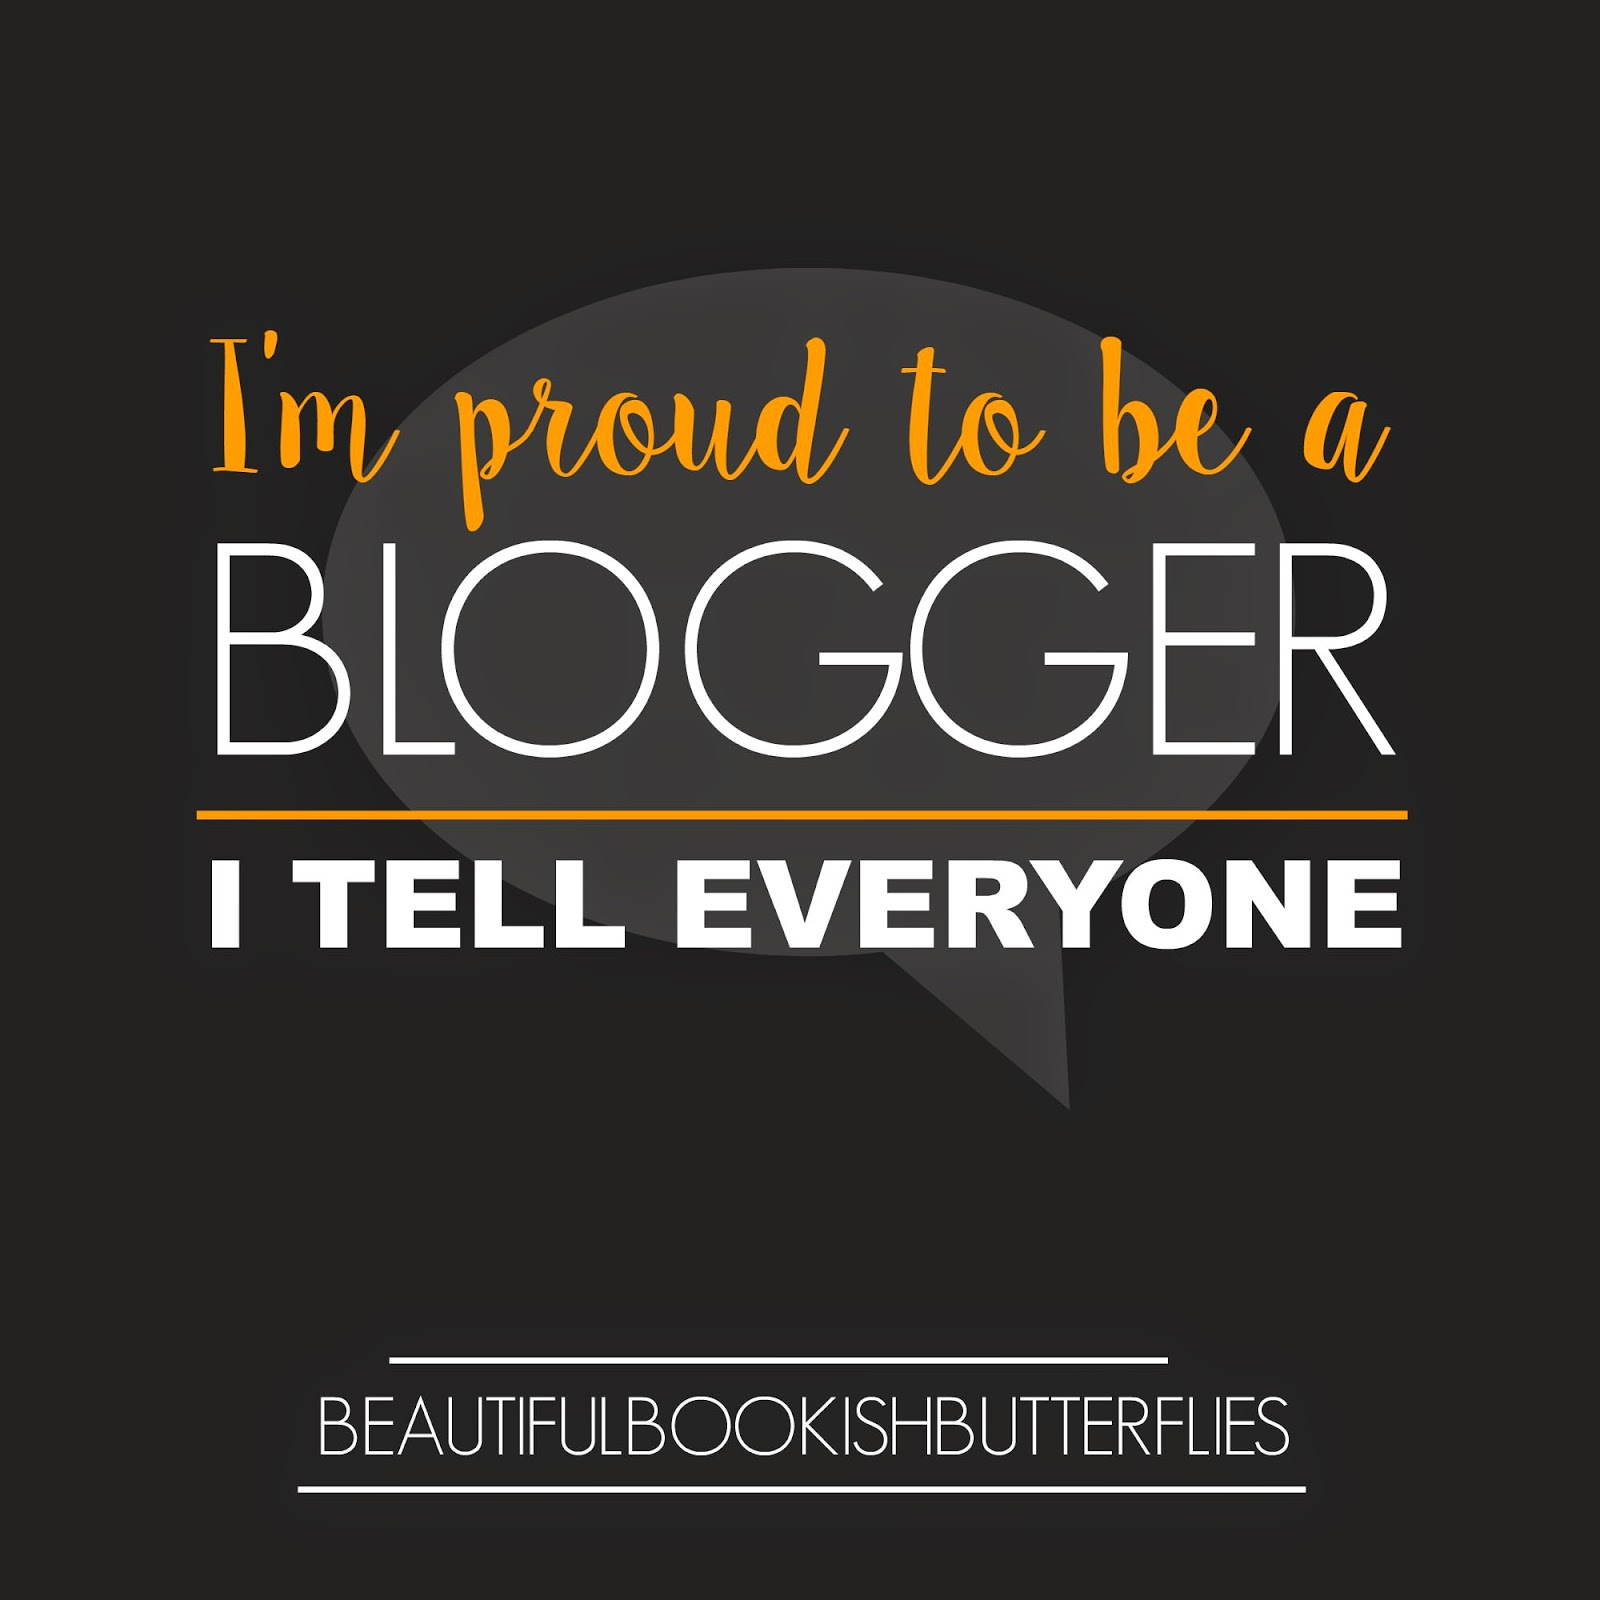 I'm Proud To Be a Blogger